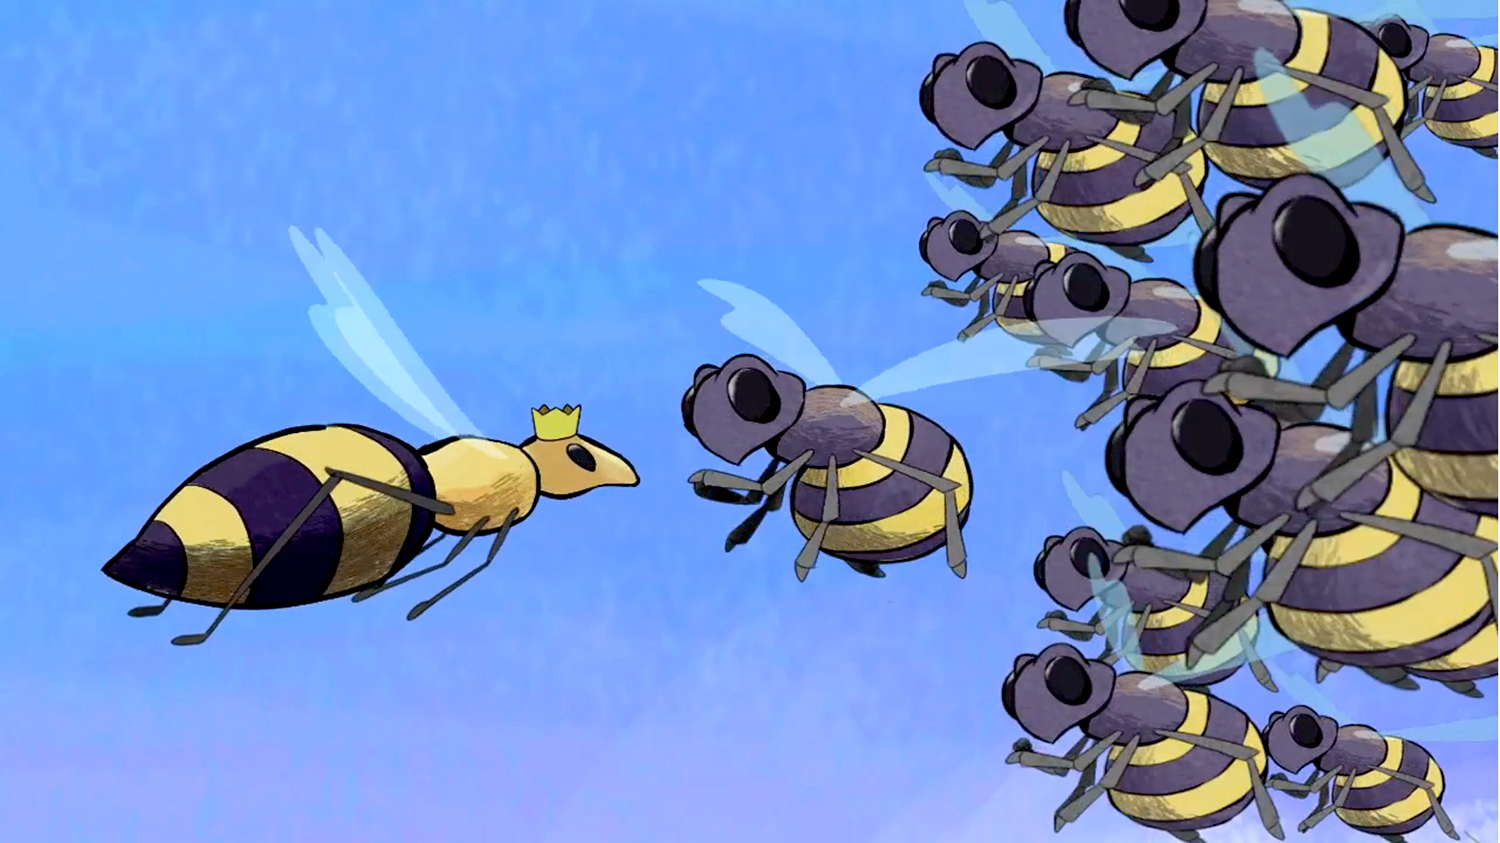 More bees